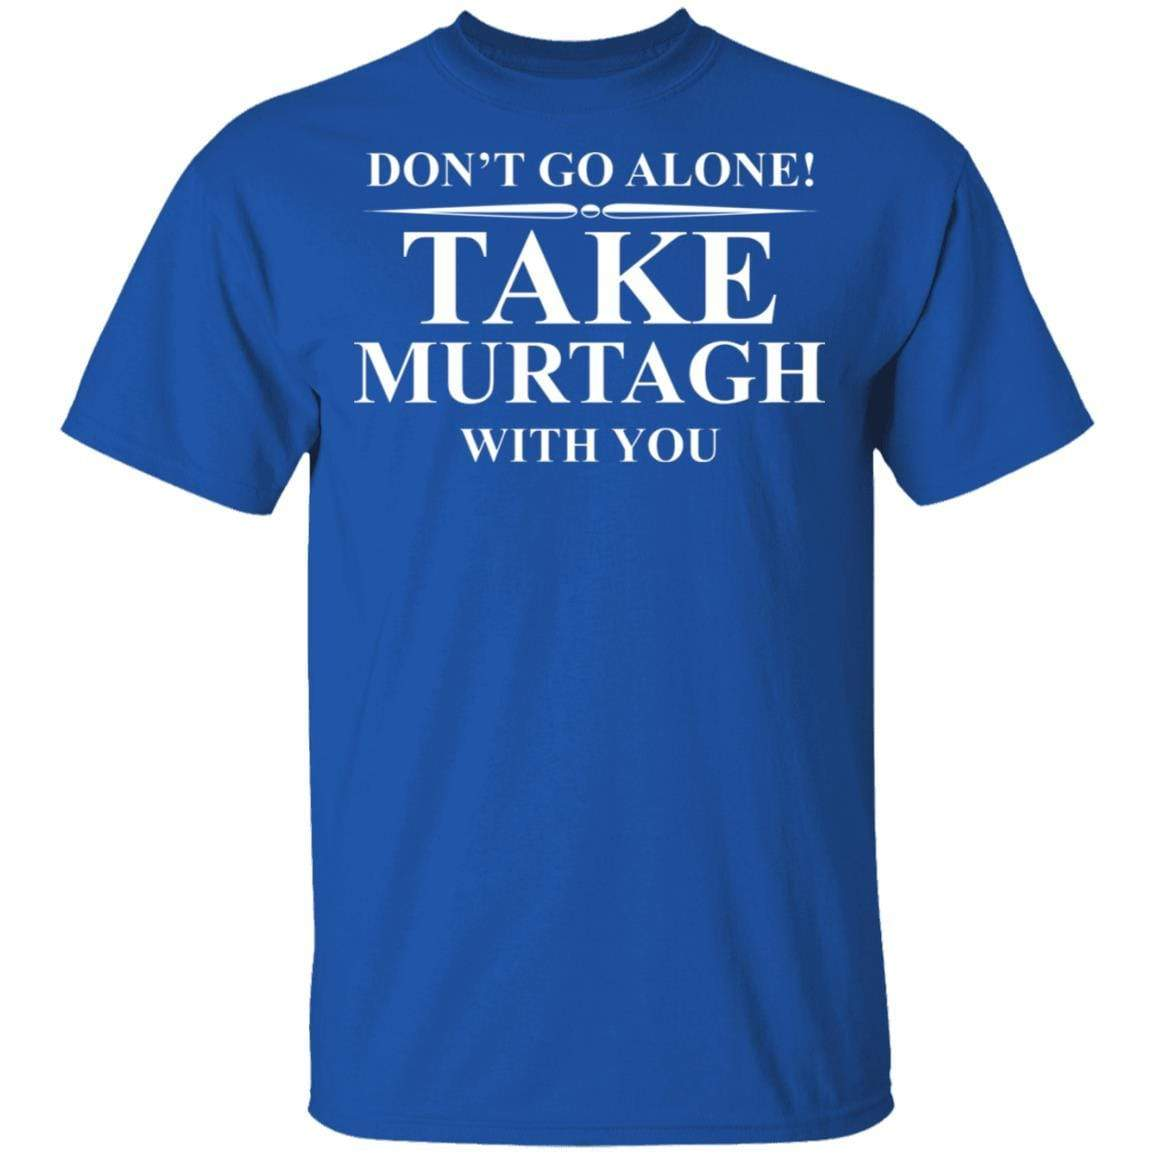 Don't Go Alone Take Murtagh With You T-Shirts, Hoodies 1049-9971-92796760-48286 - Tee Ript